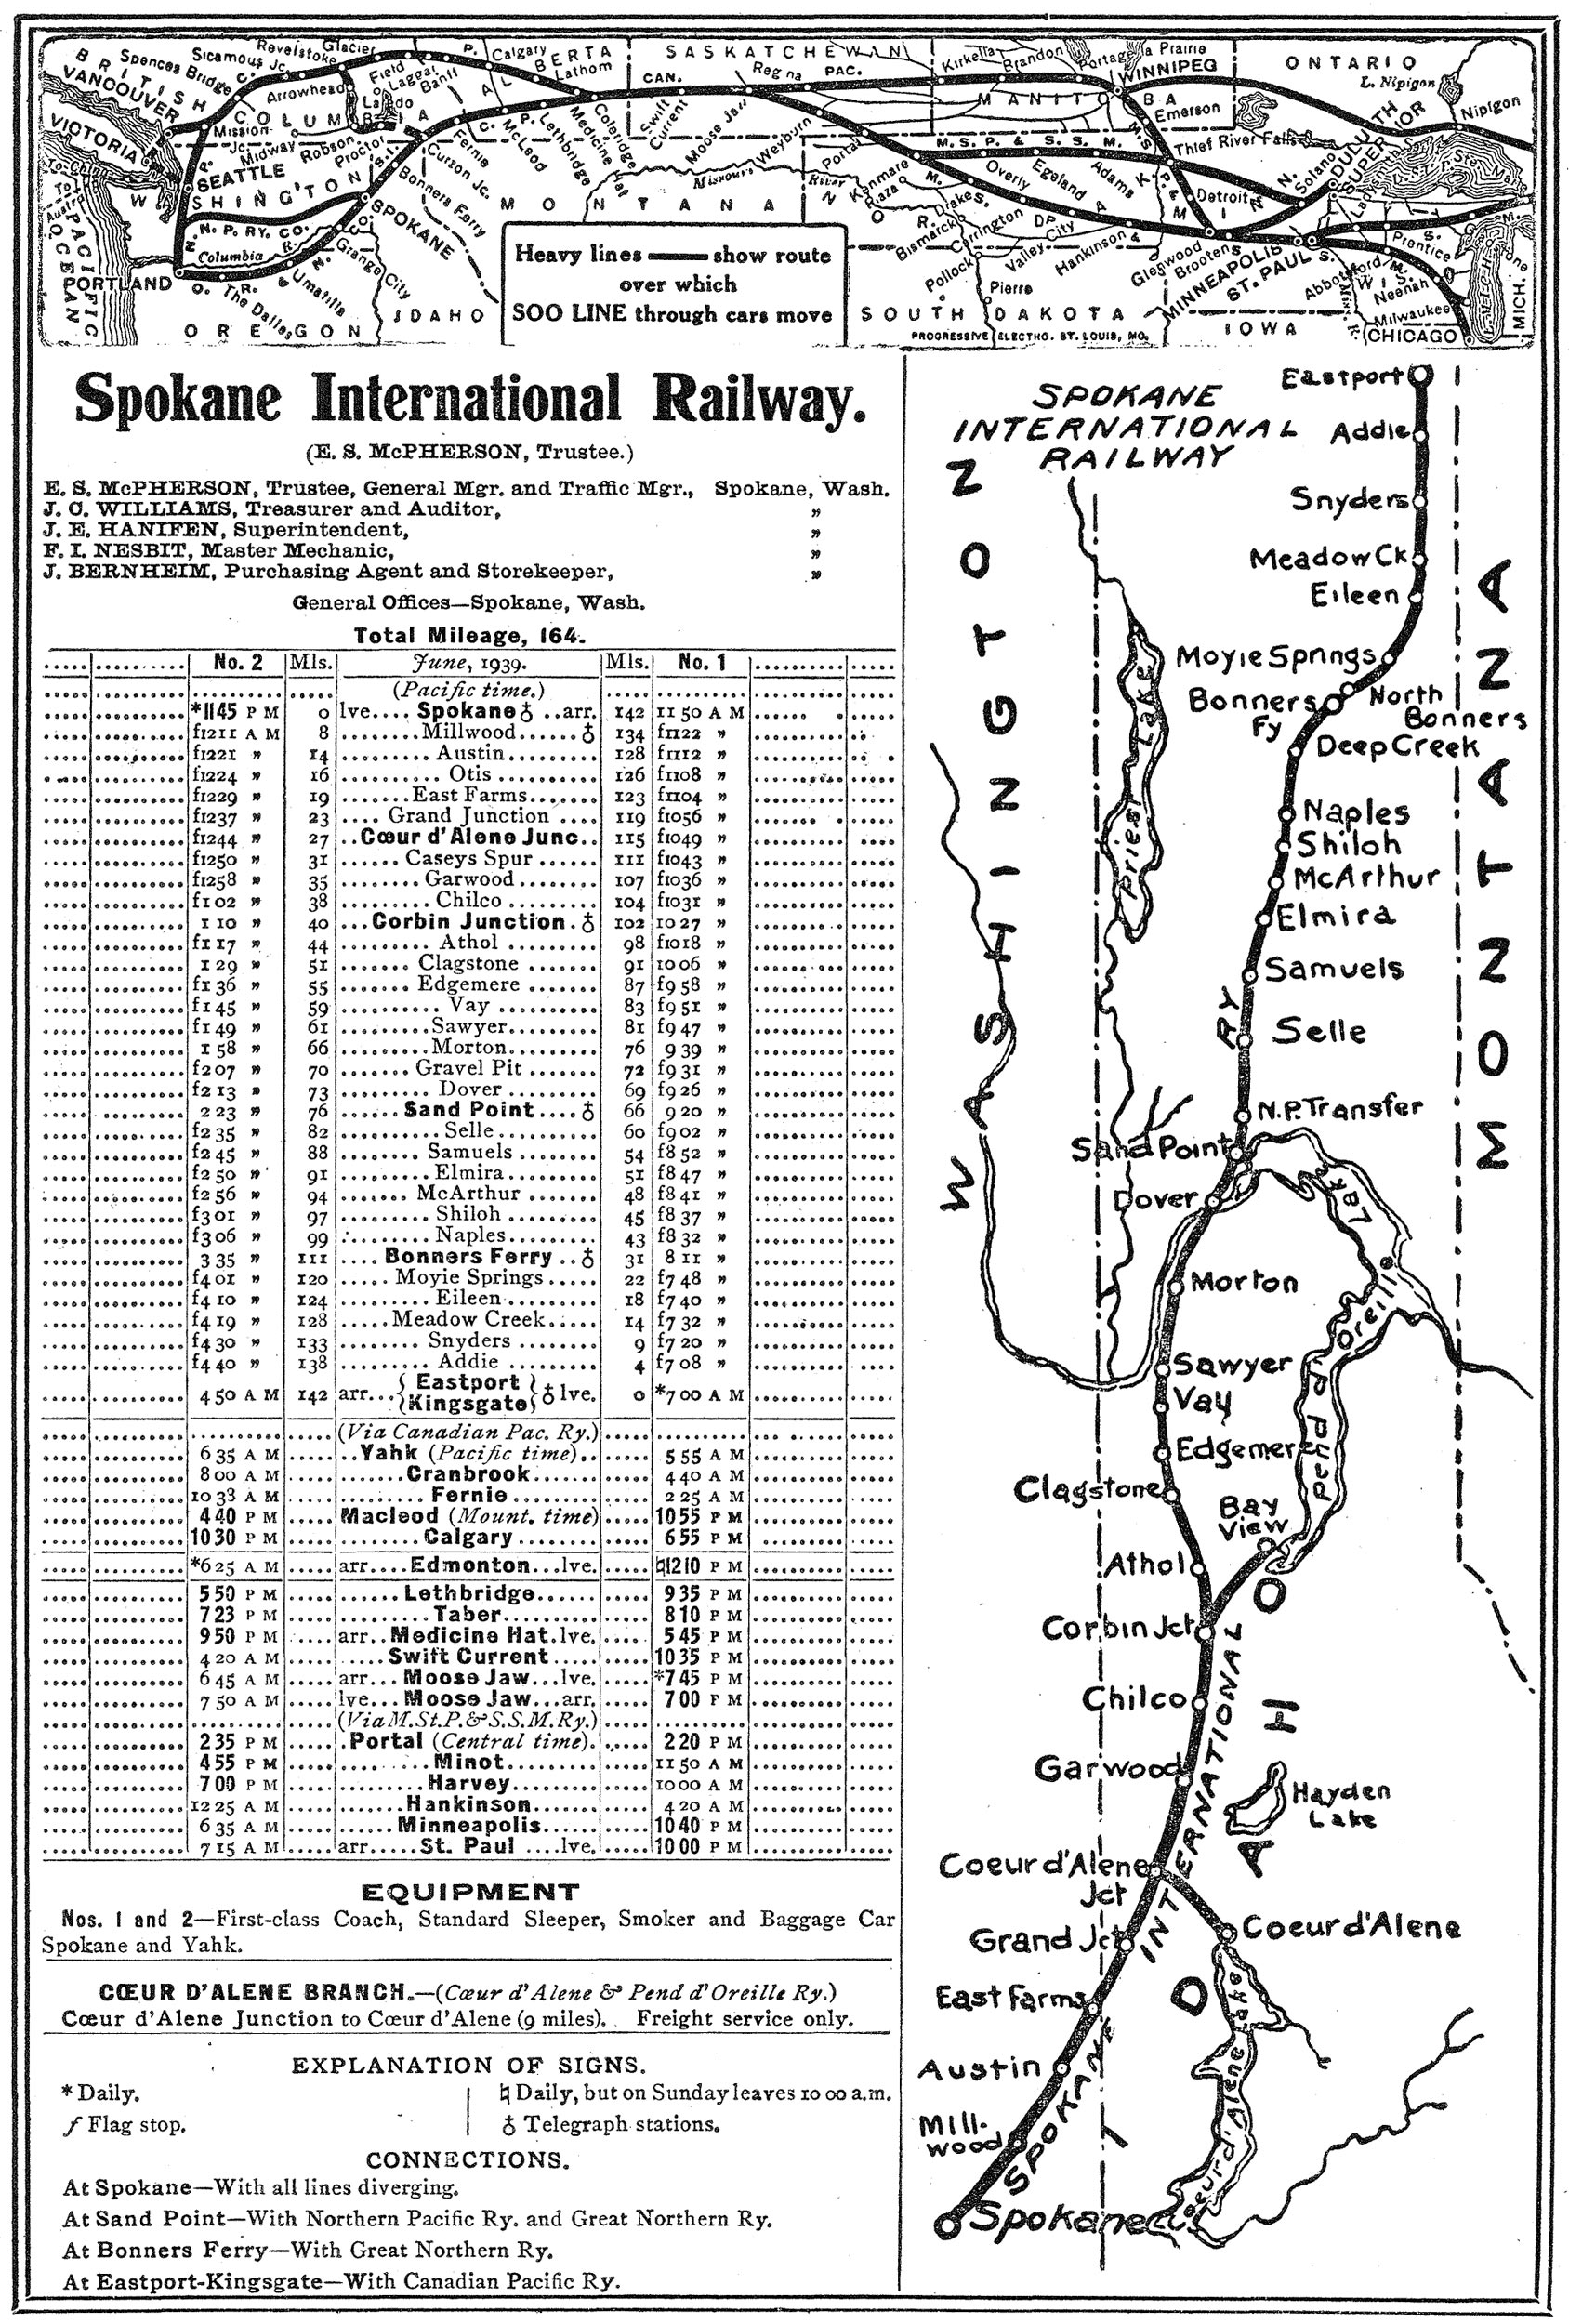 The Spokane International Railroad - Us railroad traffic map